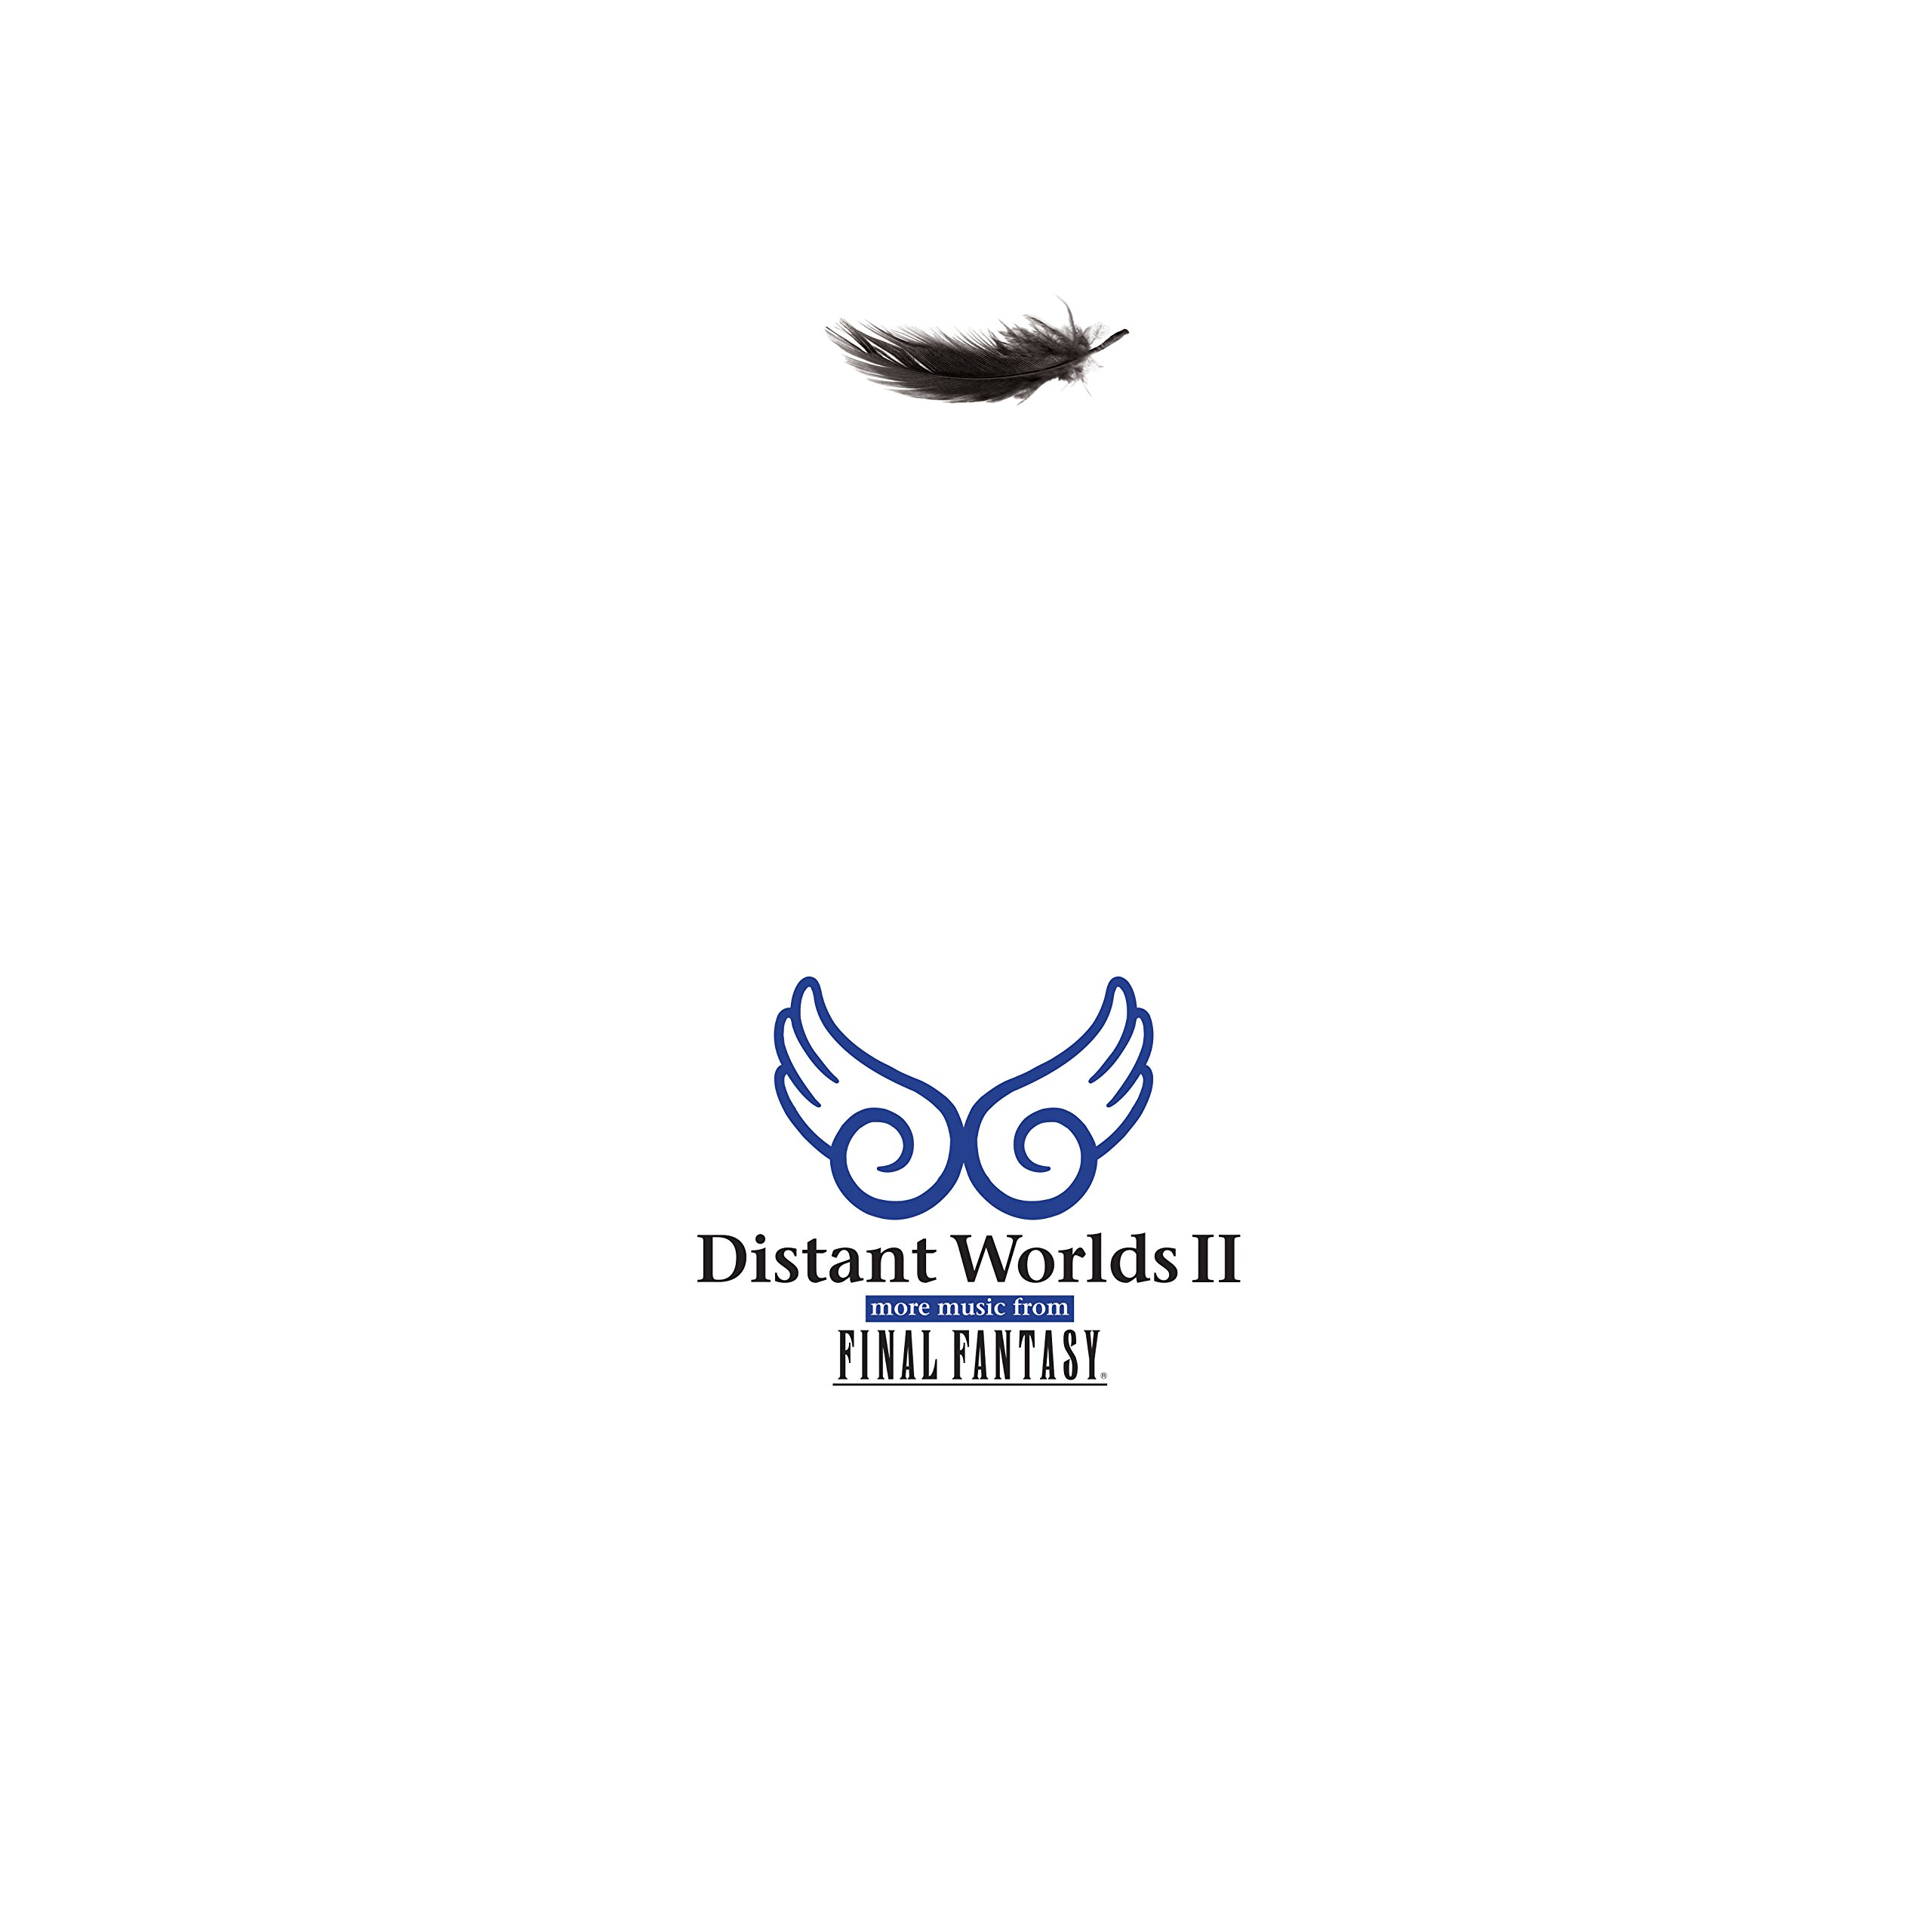 Distant Worlds II: more music from FINAL FANTASY by AWR Records